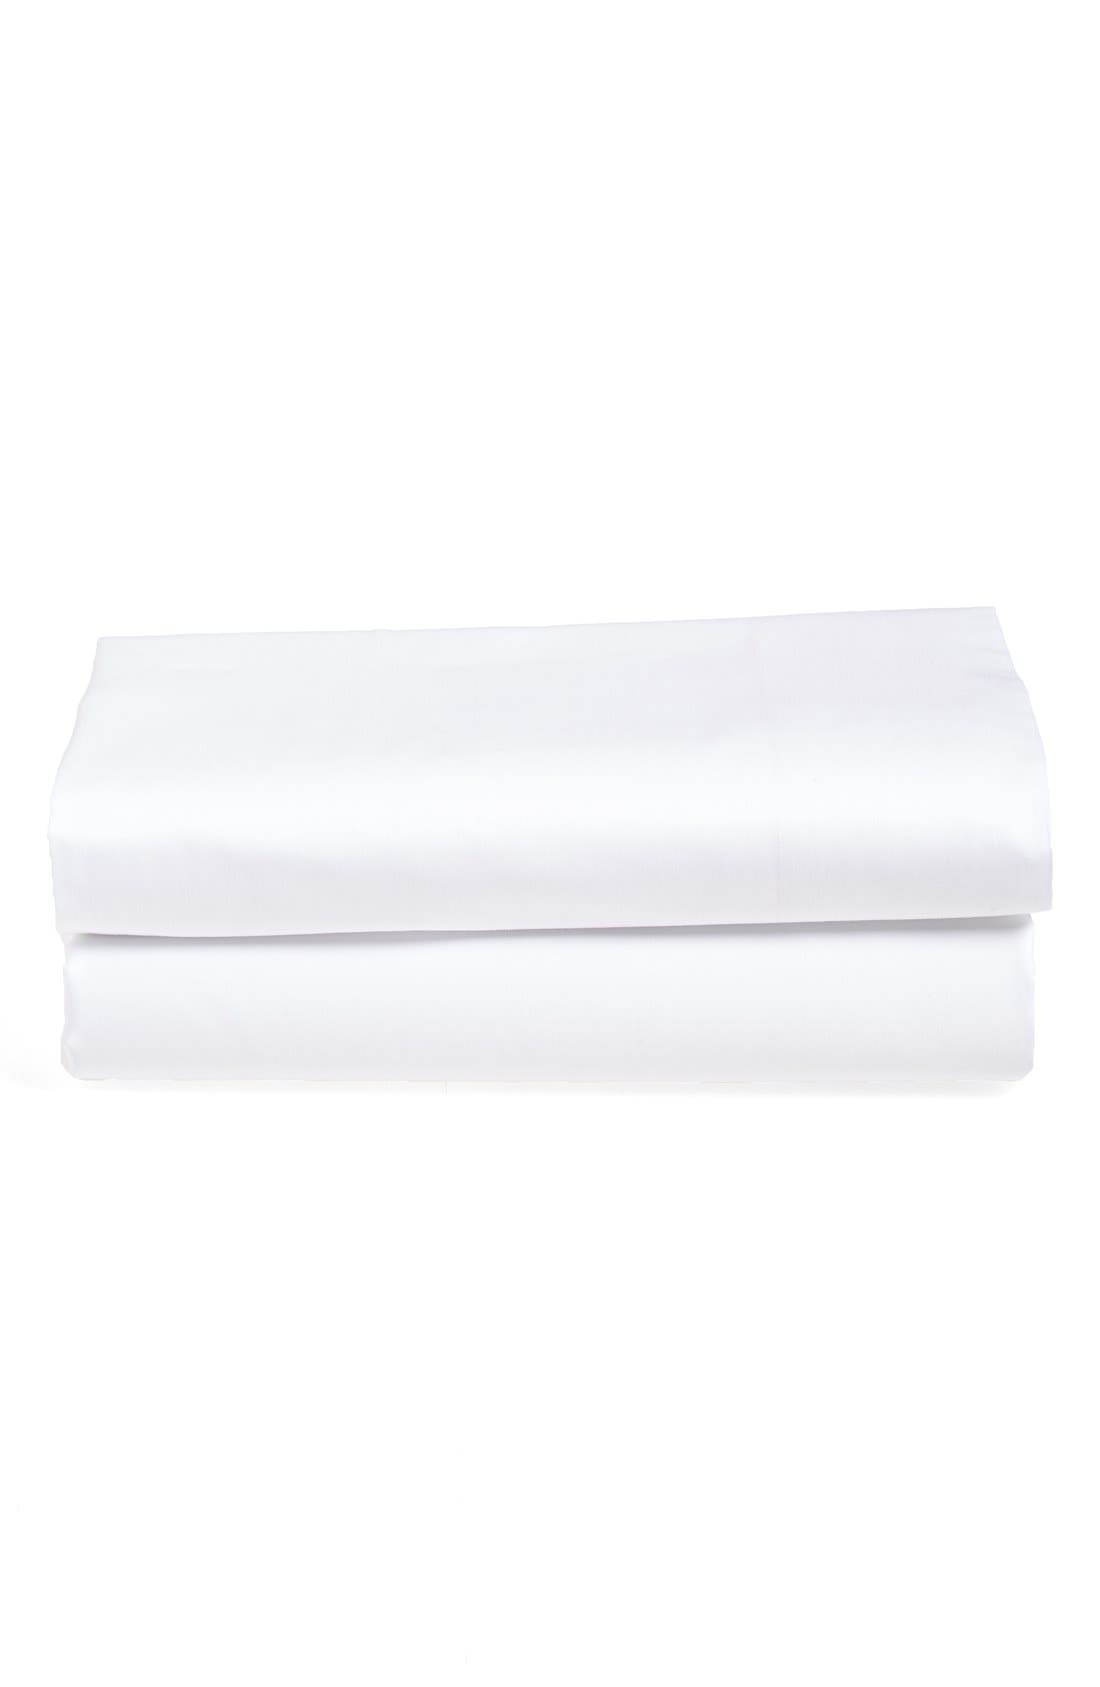 Westin At Home 'Ultra Luxe' 600 Thread Count Fitted Sheet